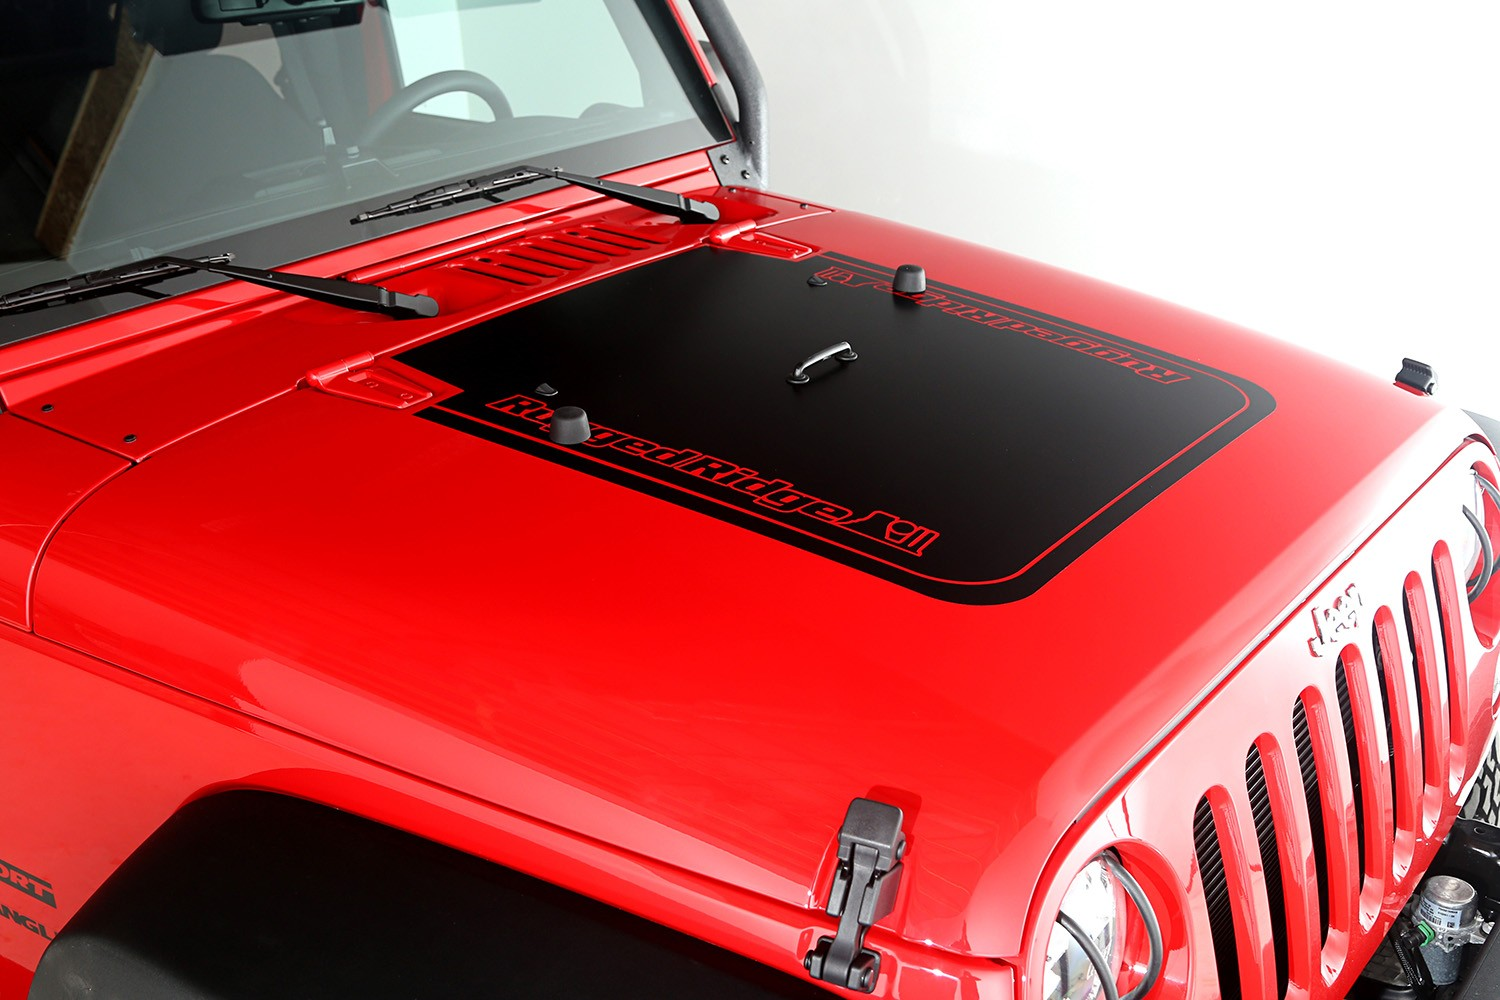 Hood decal rugged ridge jk 12300 11 jm 02602 rugged ridge